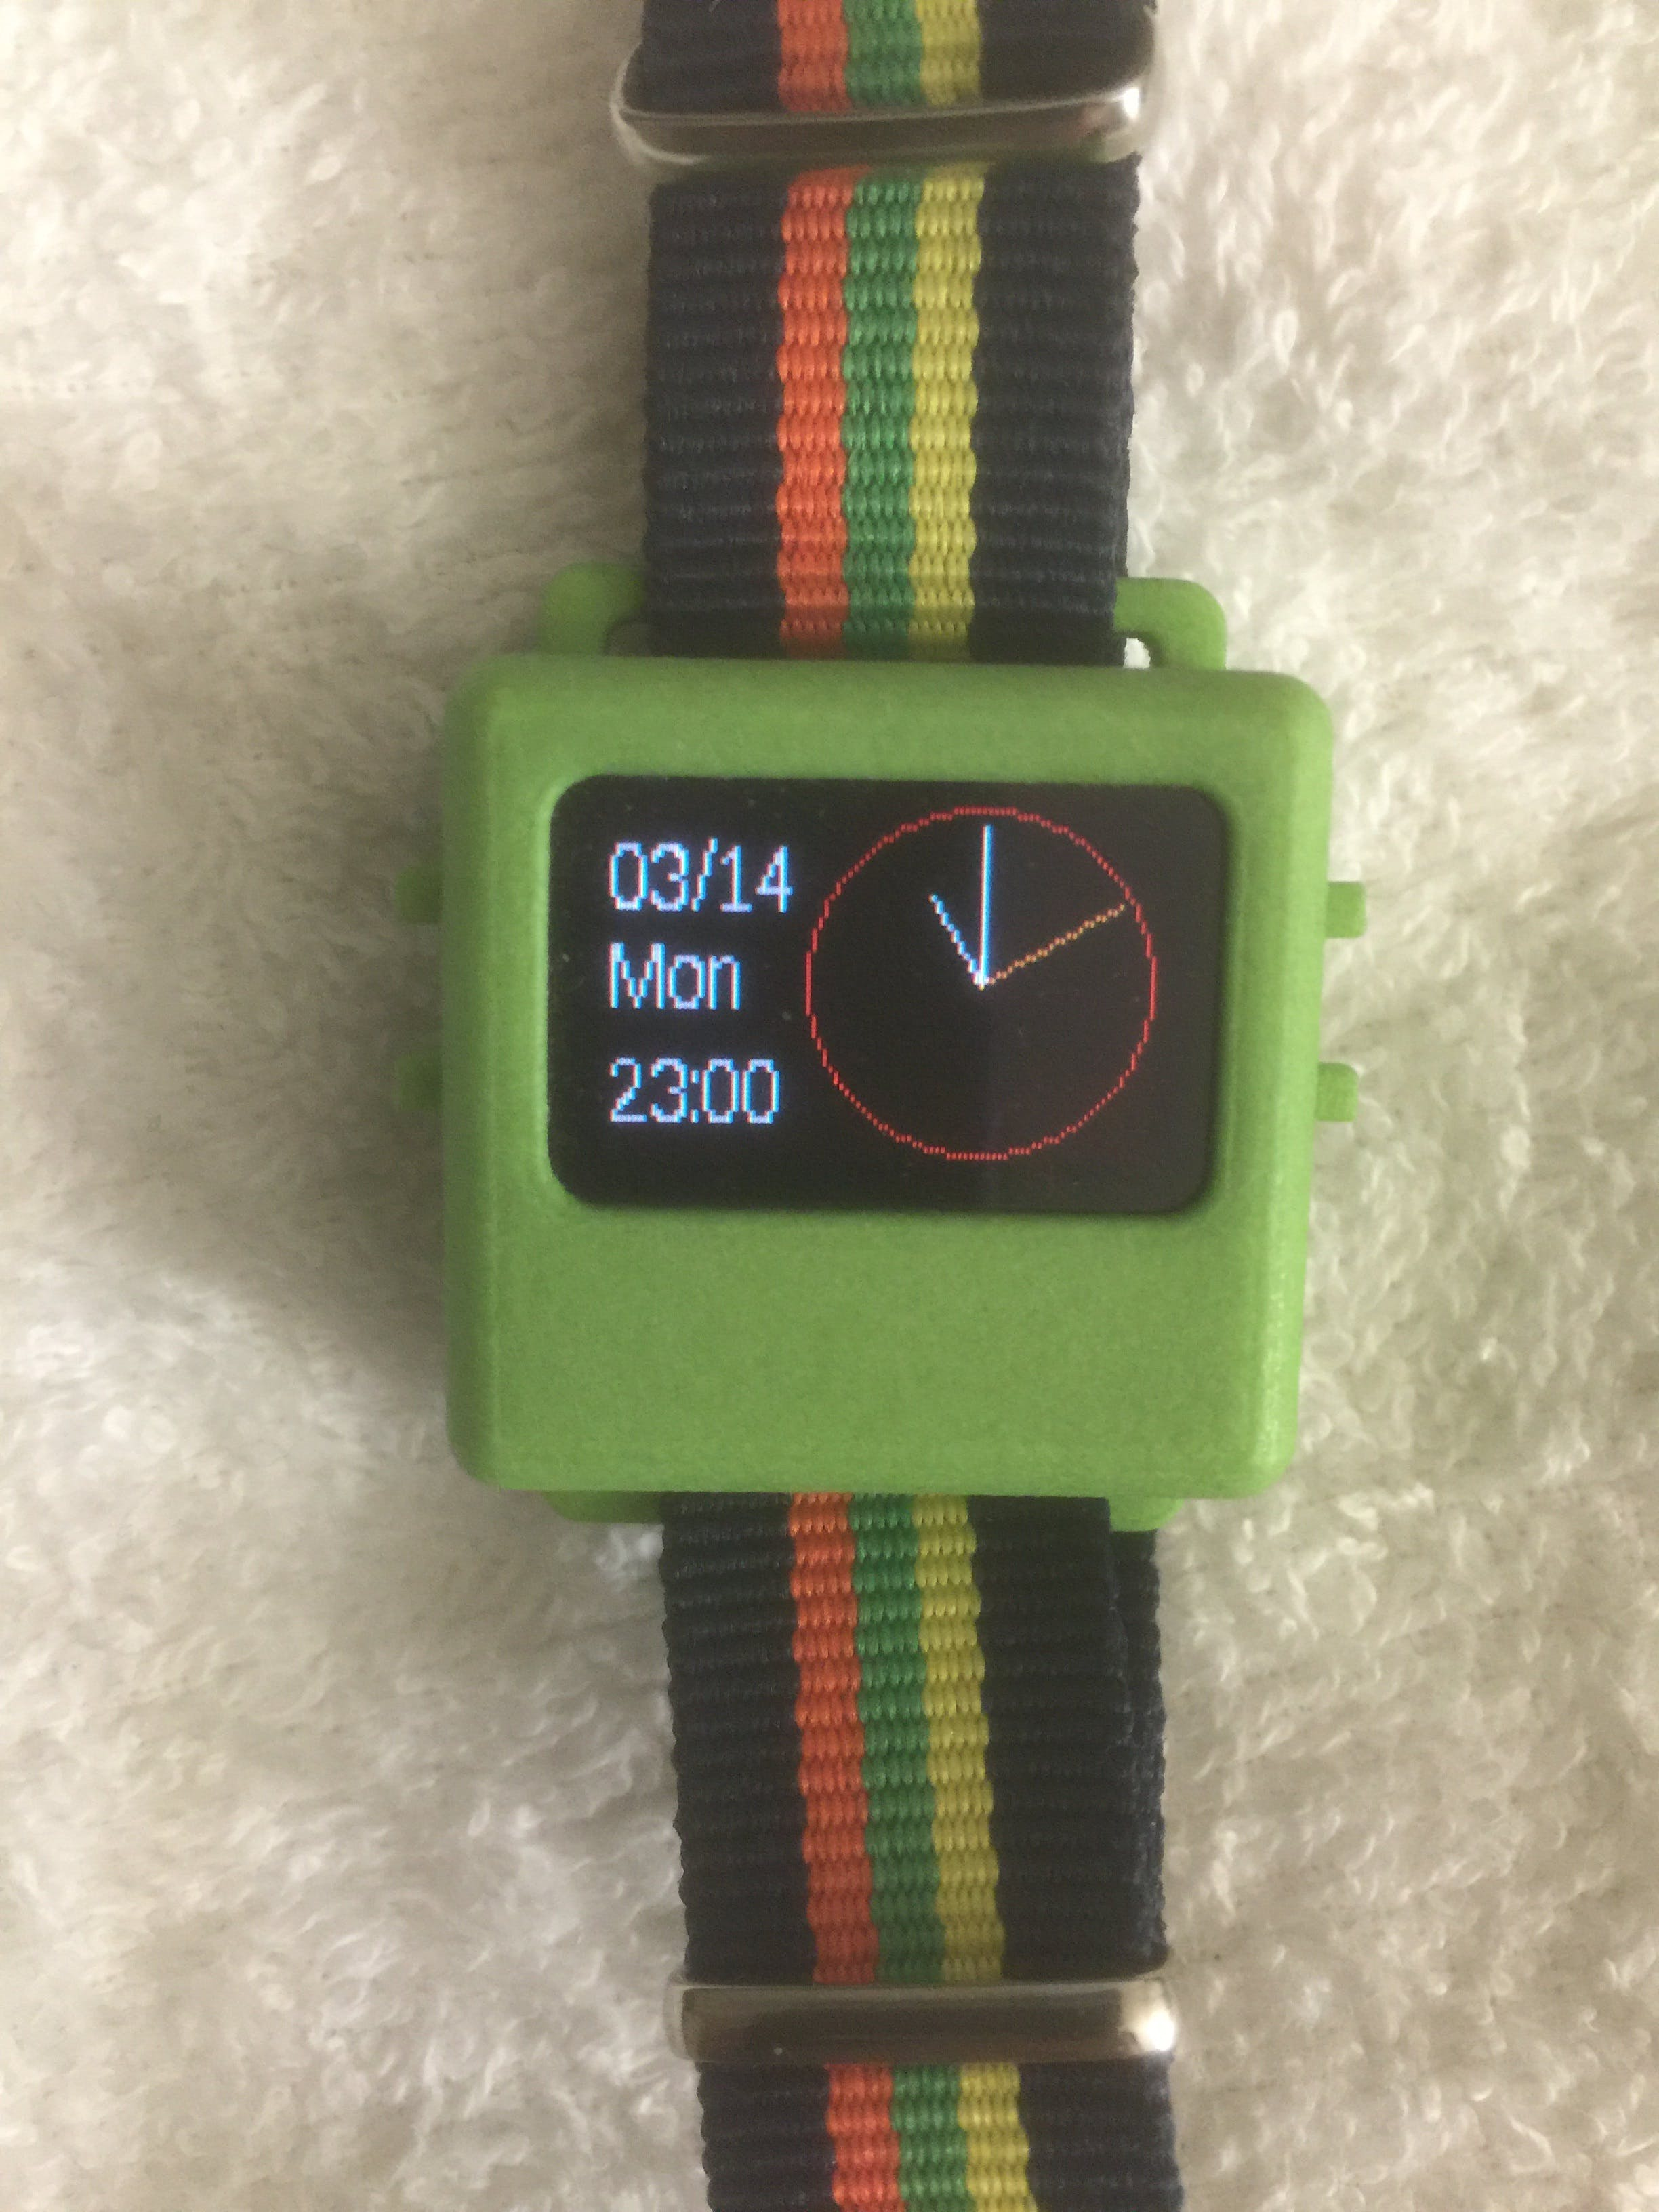 Simple Analog Watch using RTC